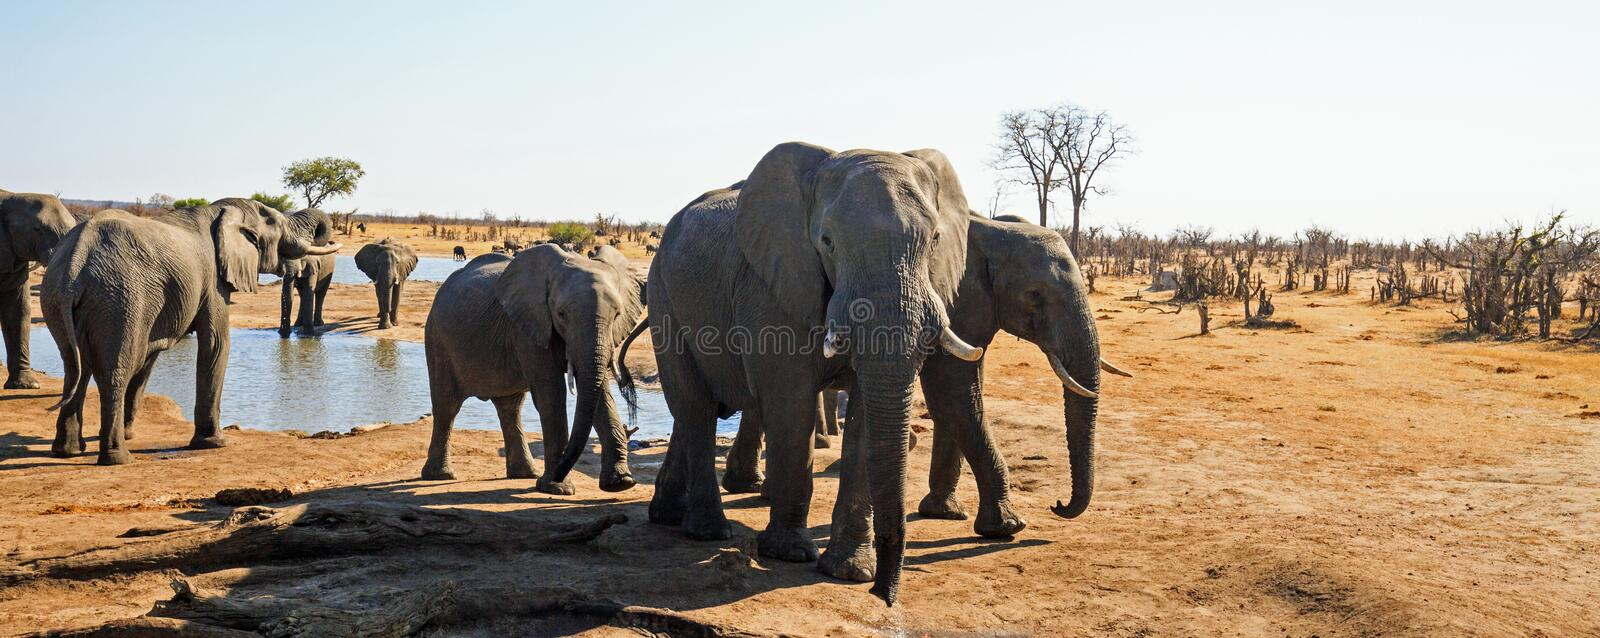 Panorama of a herd of elephants drinking close to the camp waterhole in Hwange National Park, Zimbabwe stock image